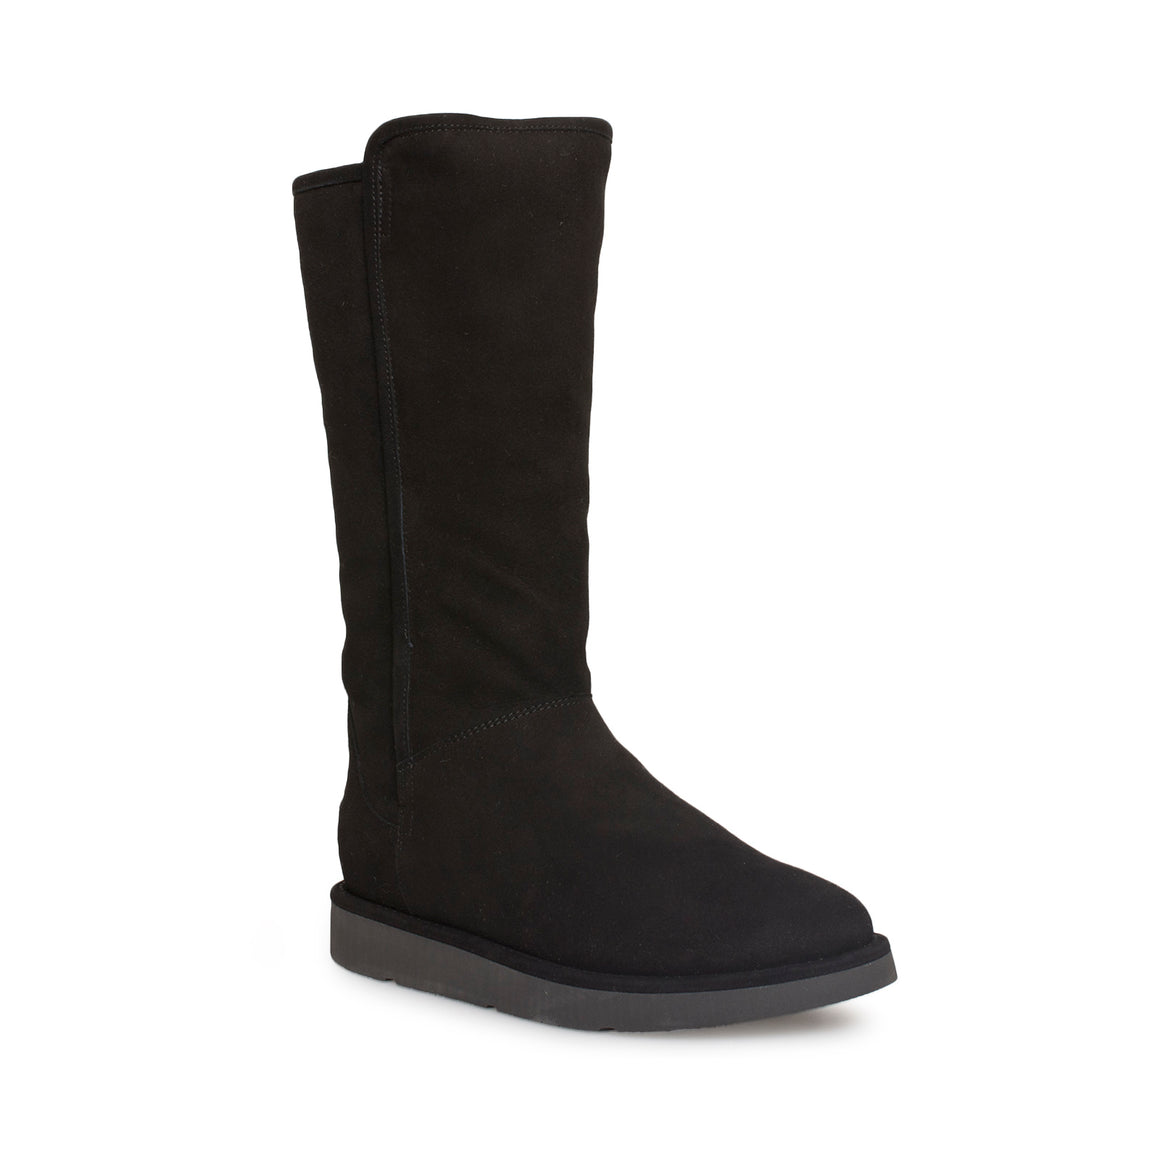 UGG Abree II Tall Nero Boots